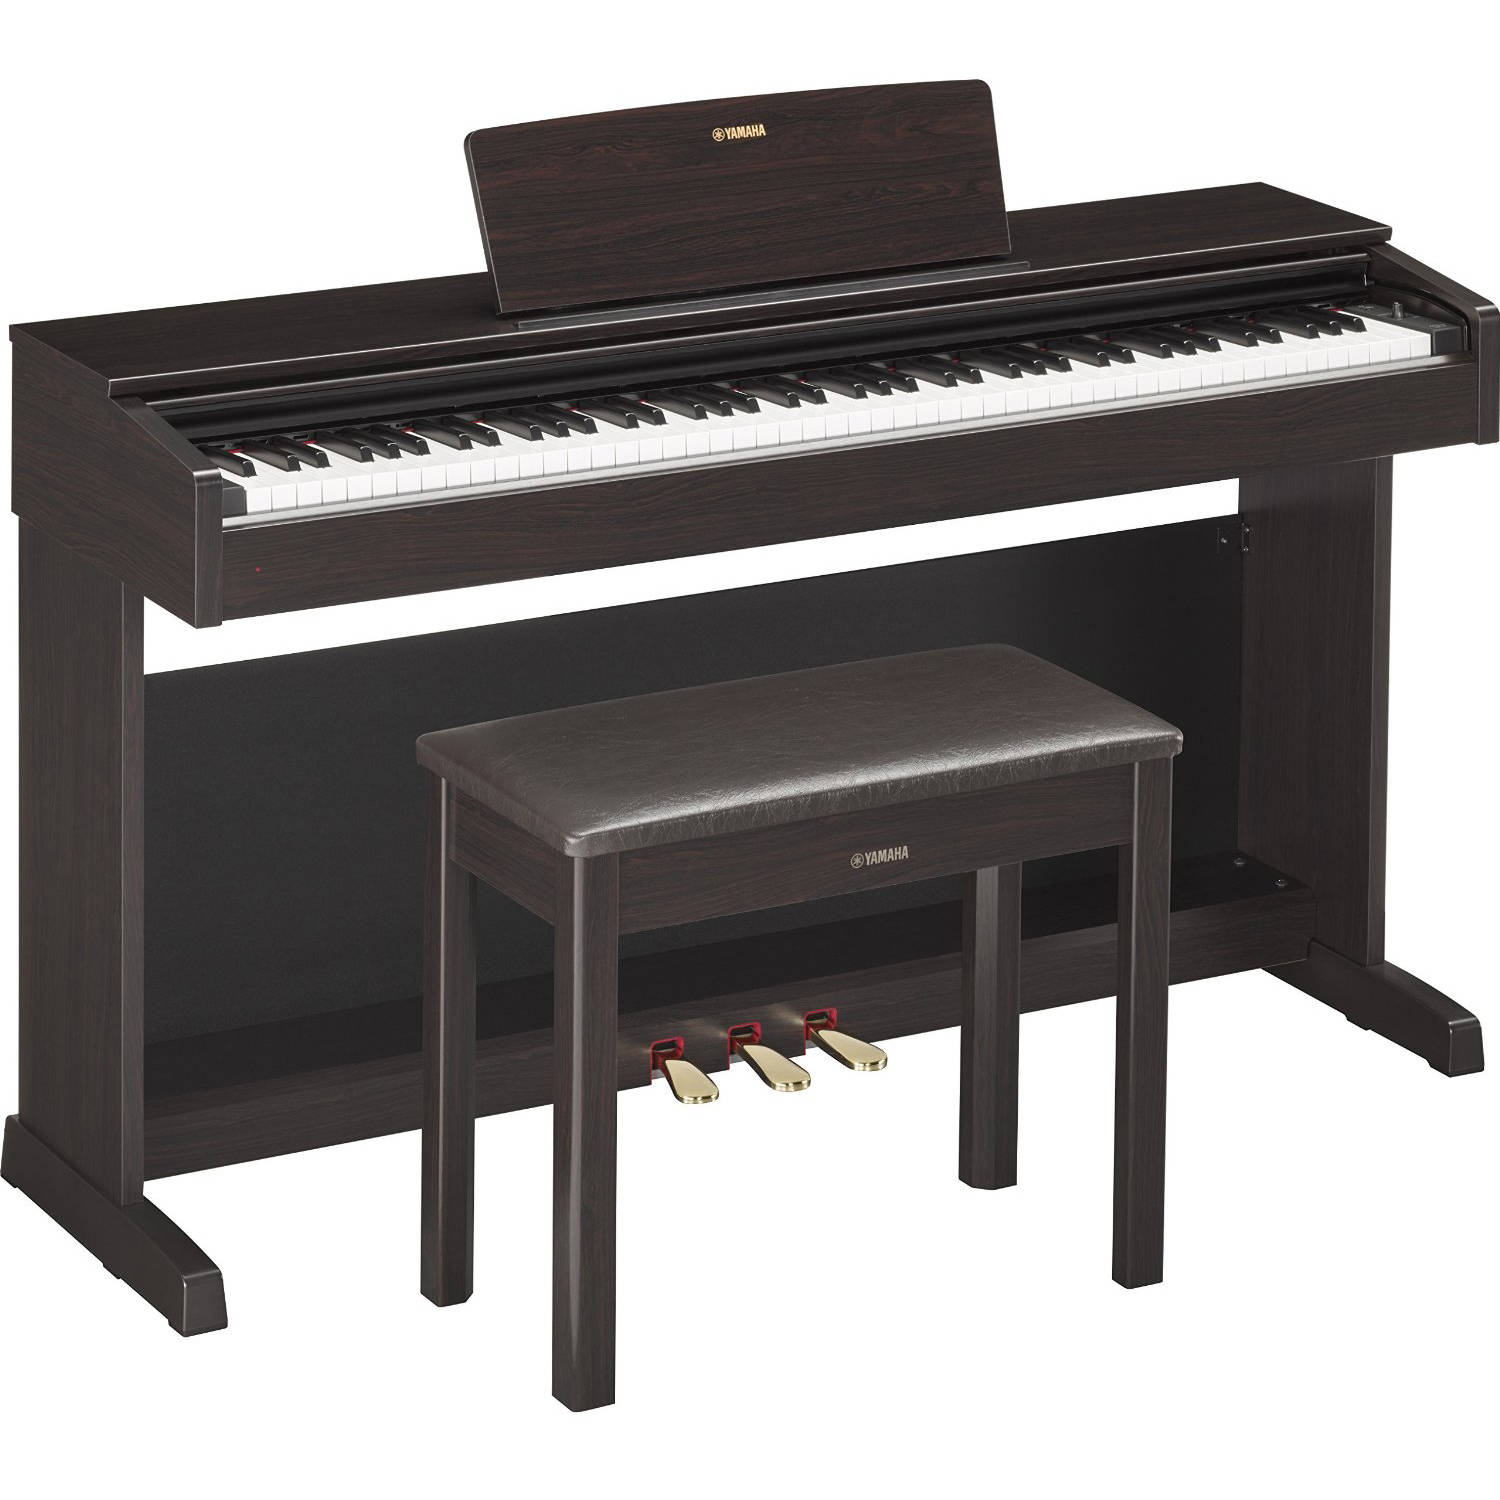 Yamaha YDP143R Digital Home Piano with Bench, Rosewood